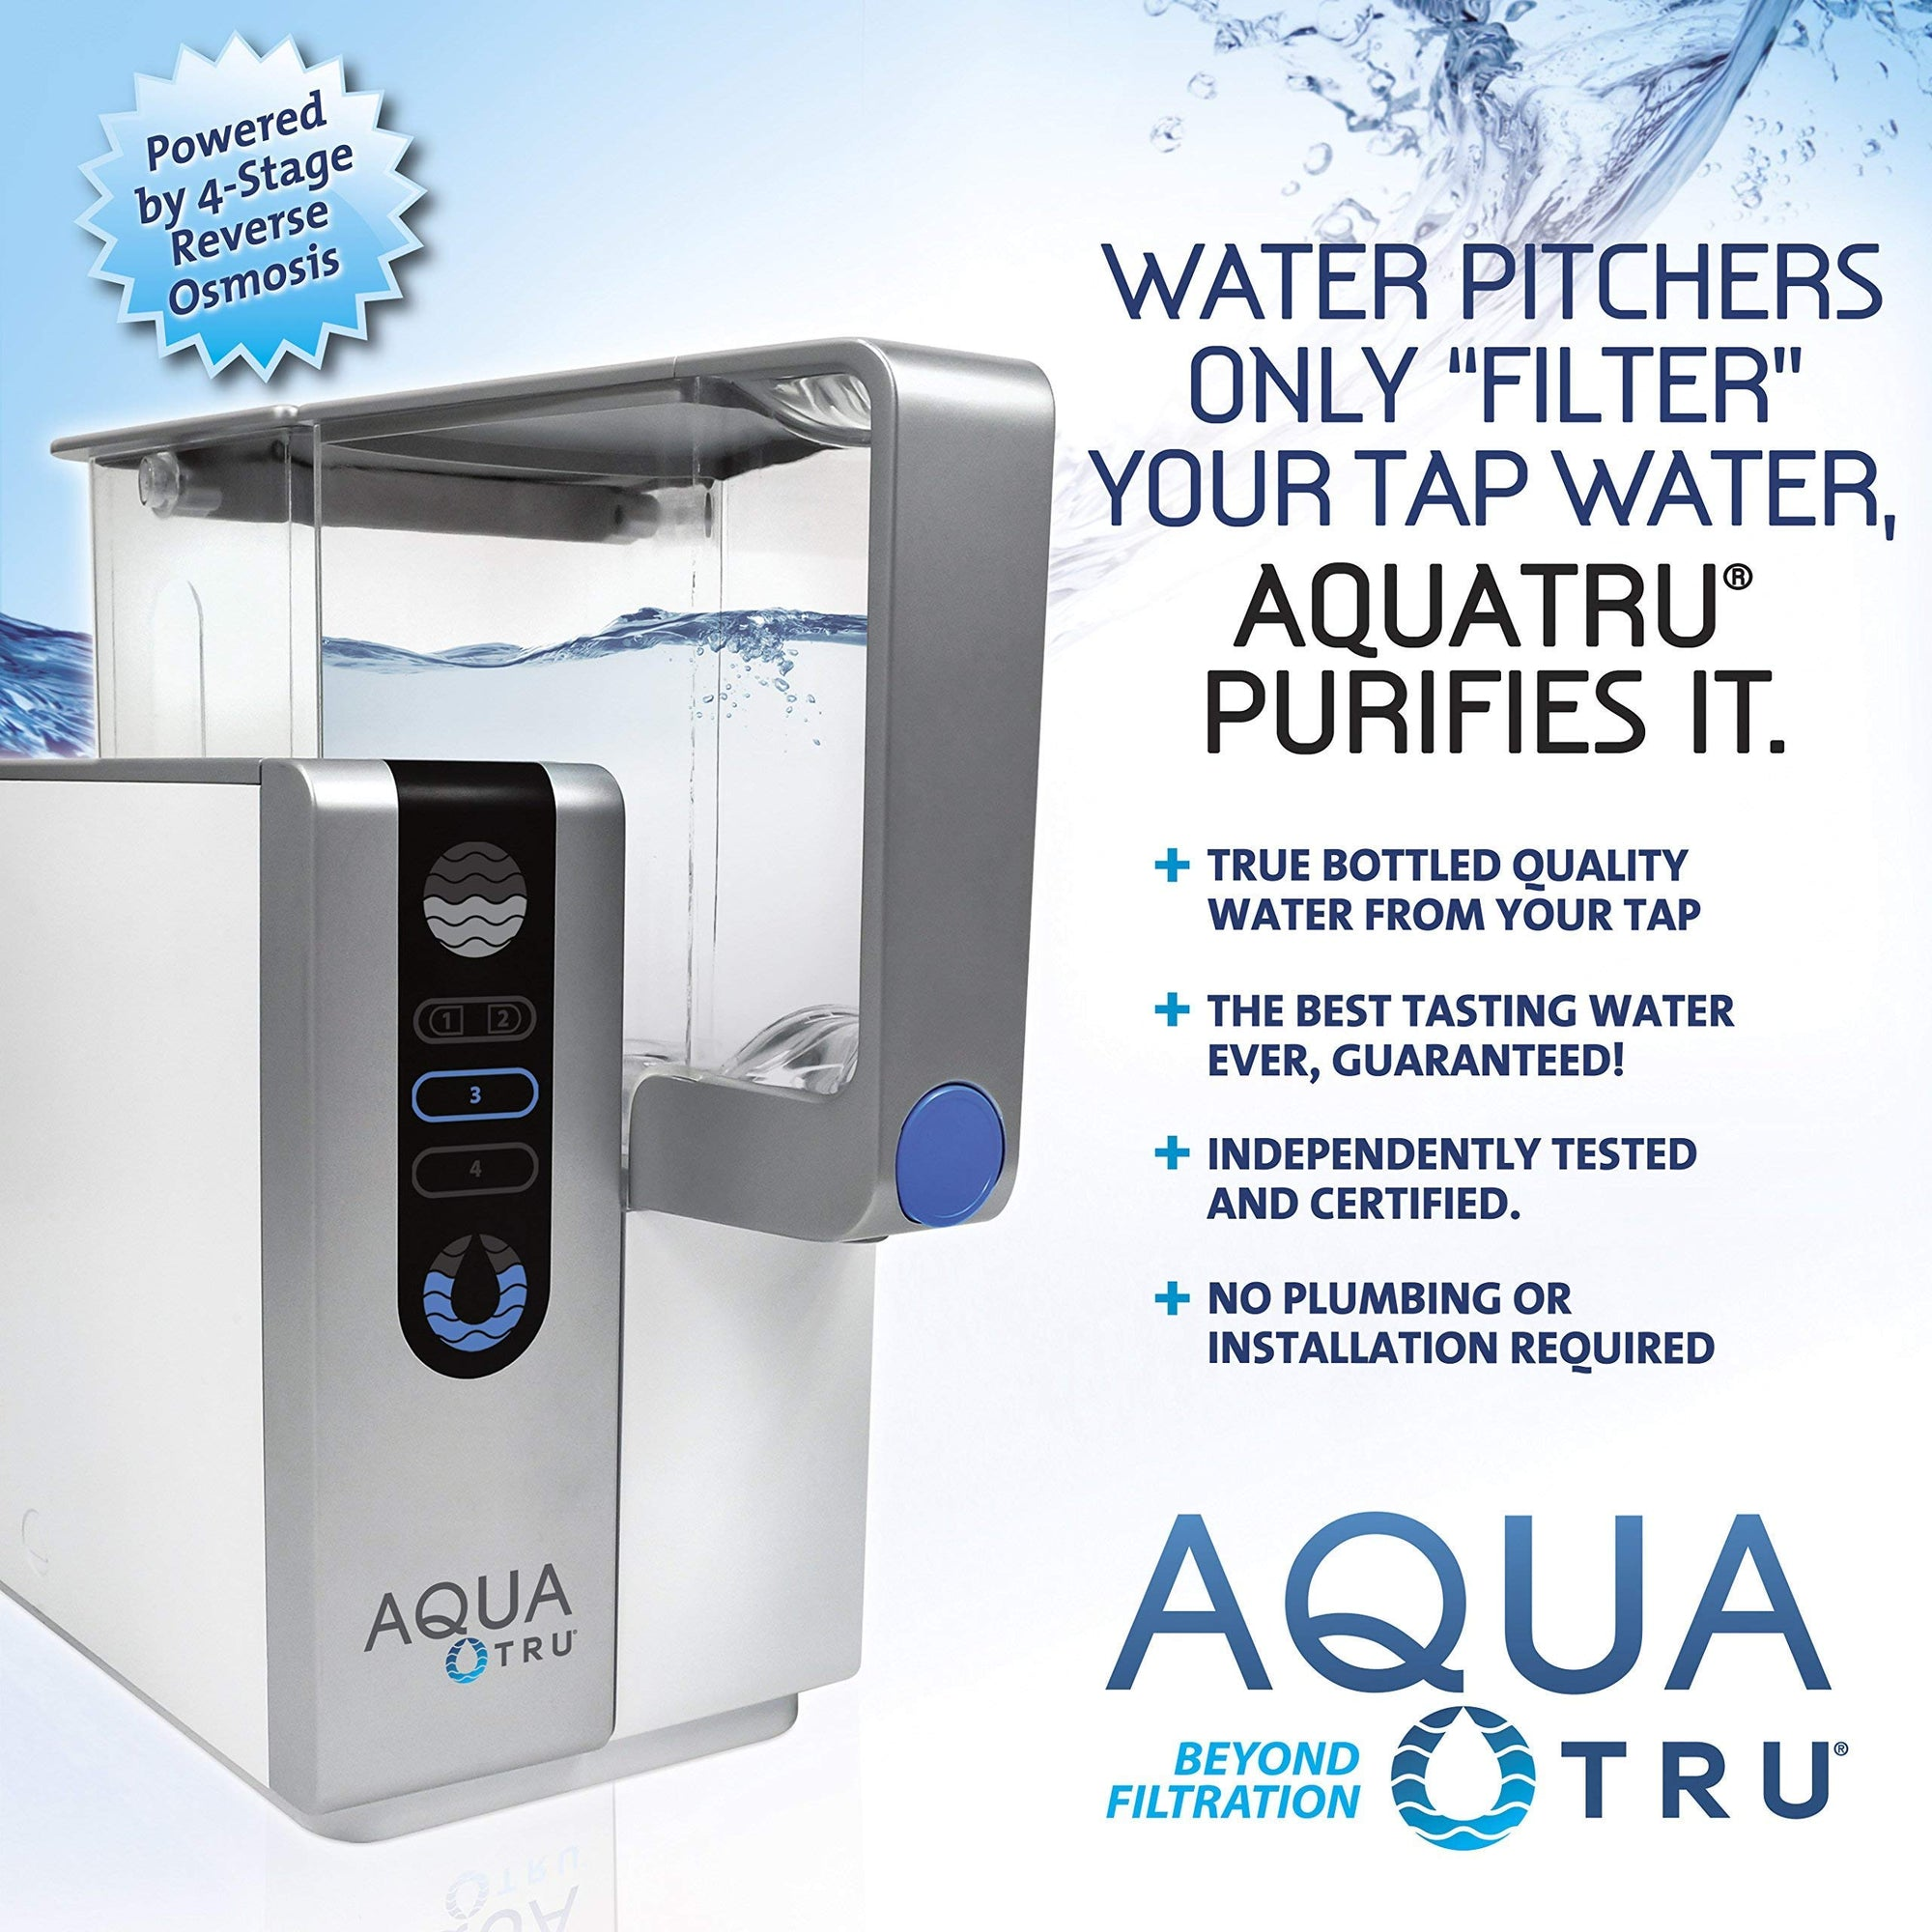 AQUA TRU Countertop Water Filtration reversee Osmosis Purification System